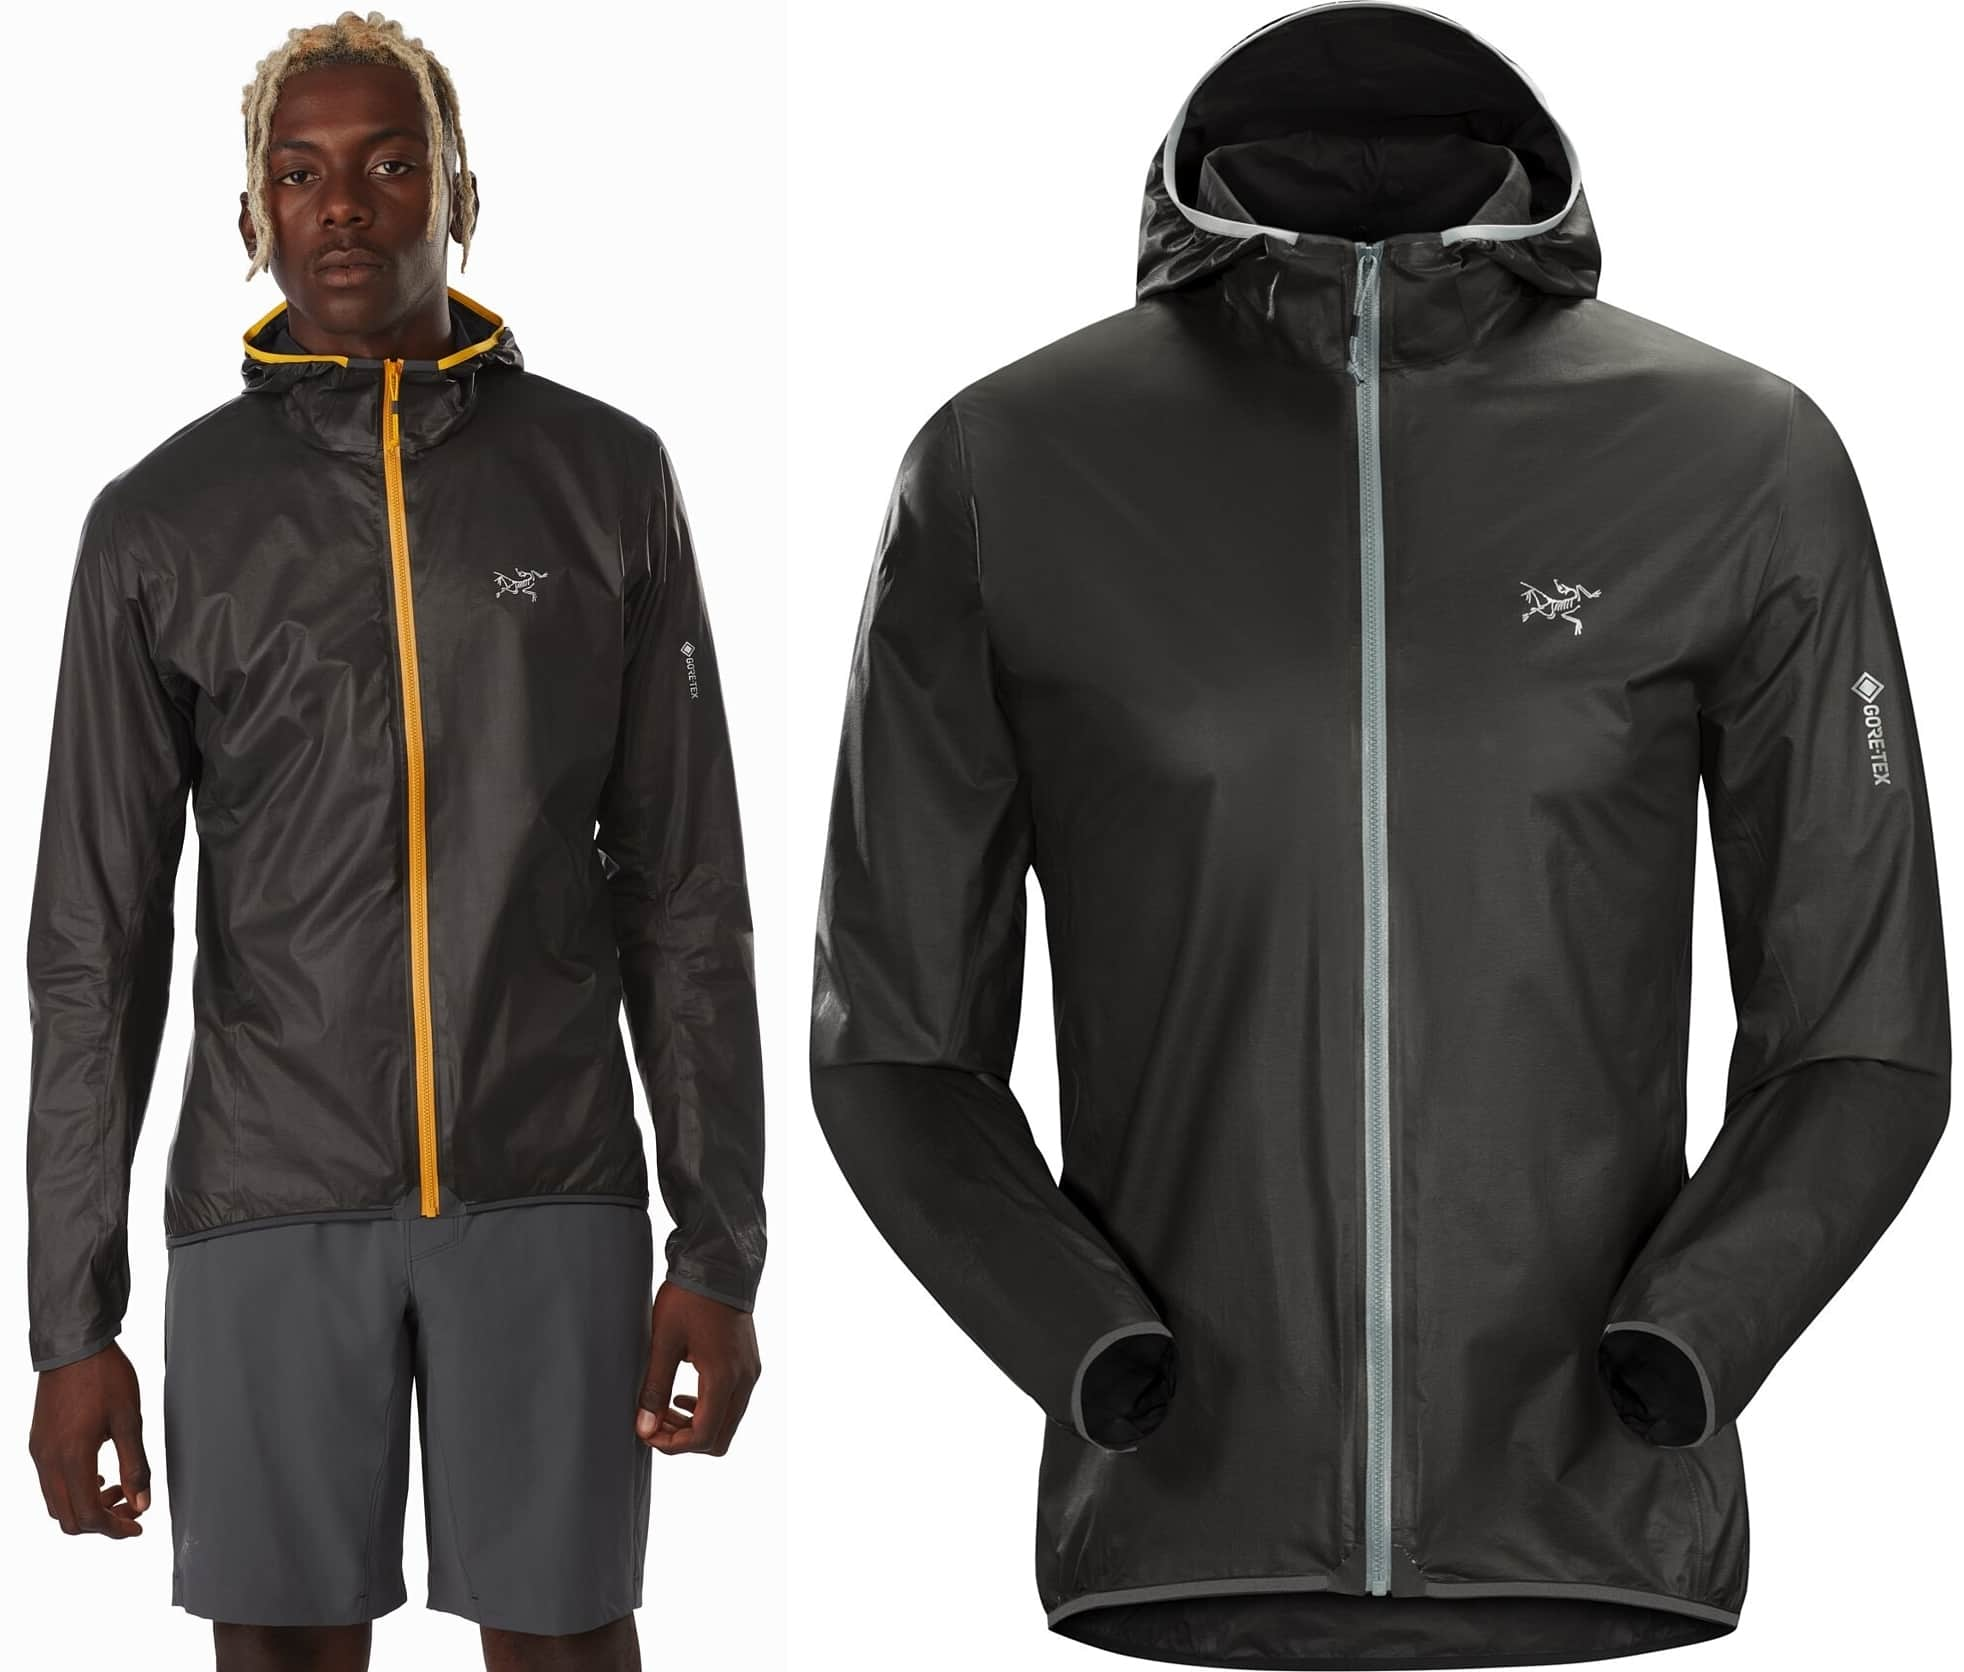 The lightest, most breathable Arc'teryx GORE-TEX trail running jacket